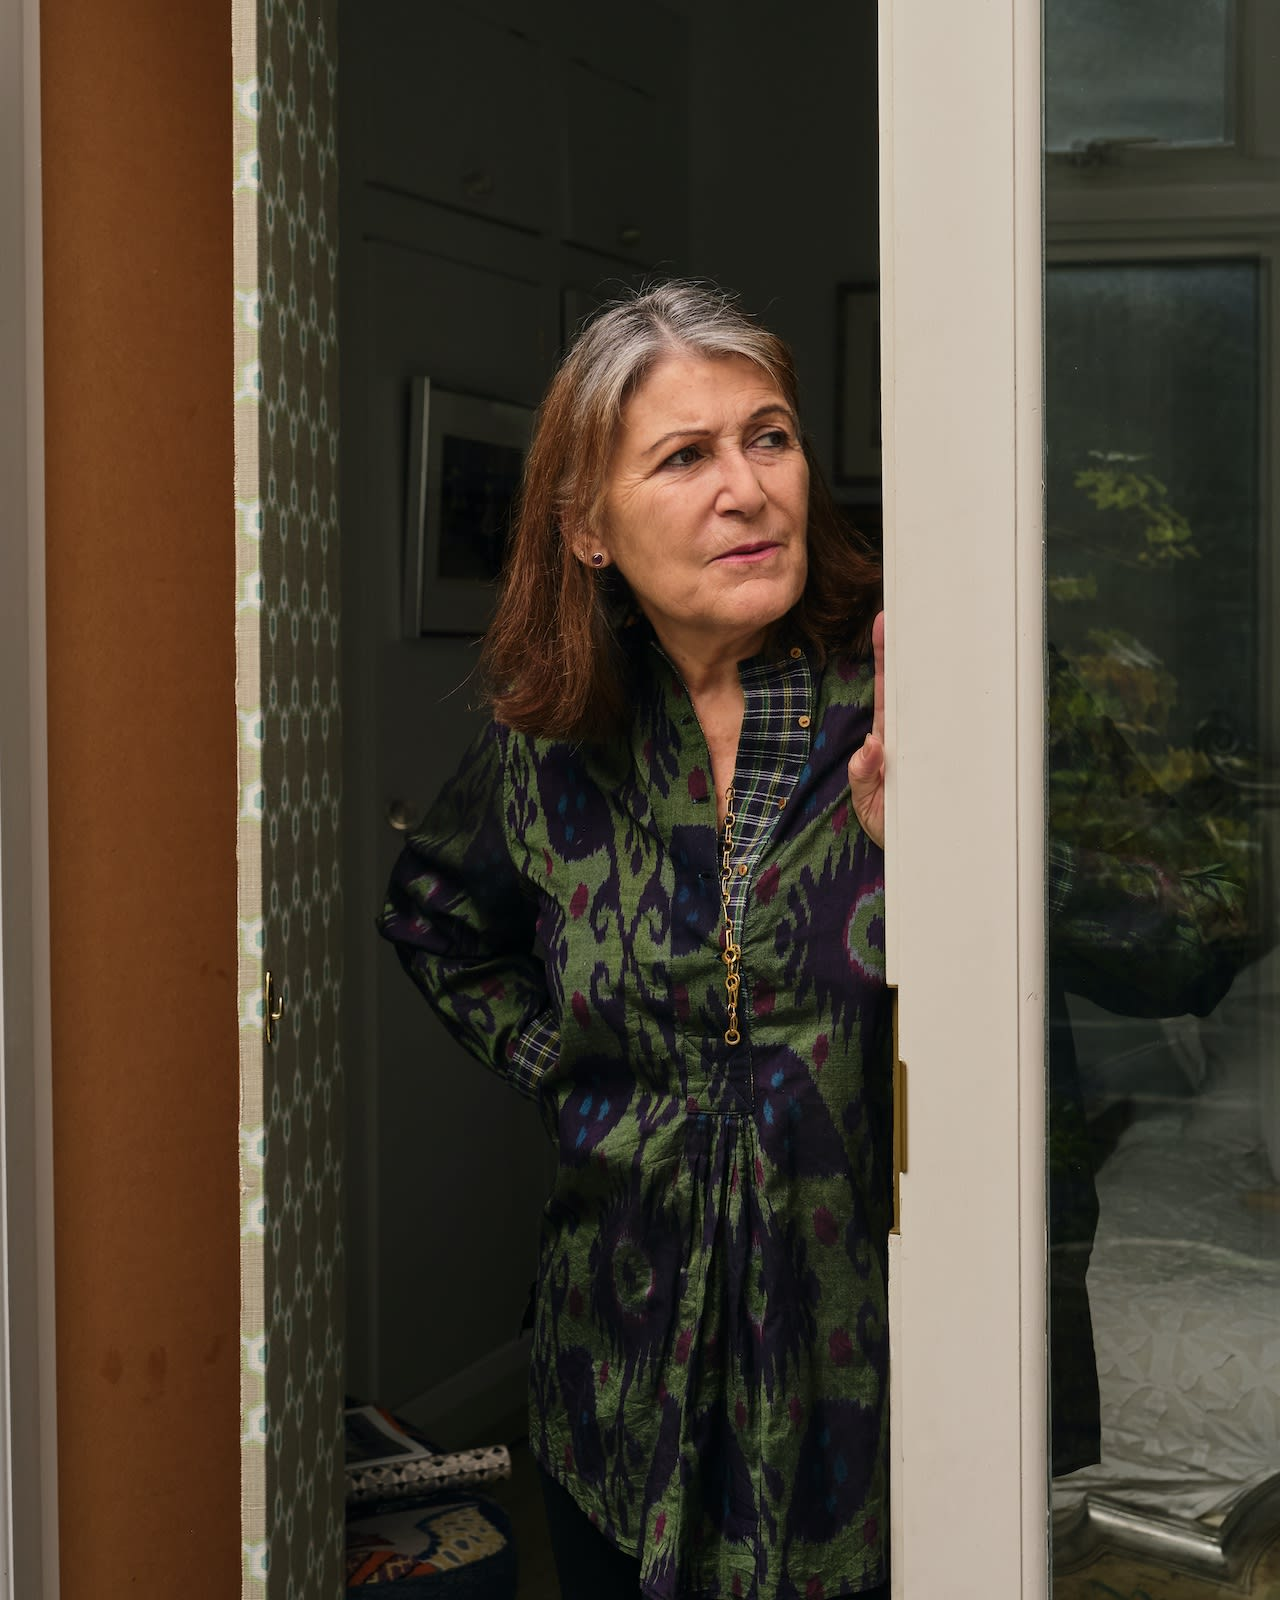 Christine talks to us in the greenhouse about Anne Leibovitz taking her portrait in her New York loft